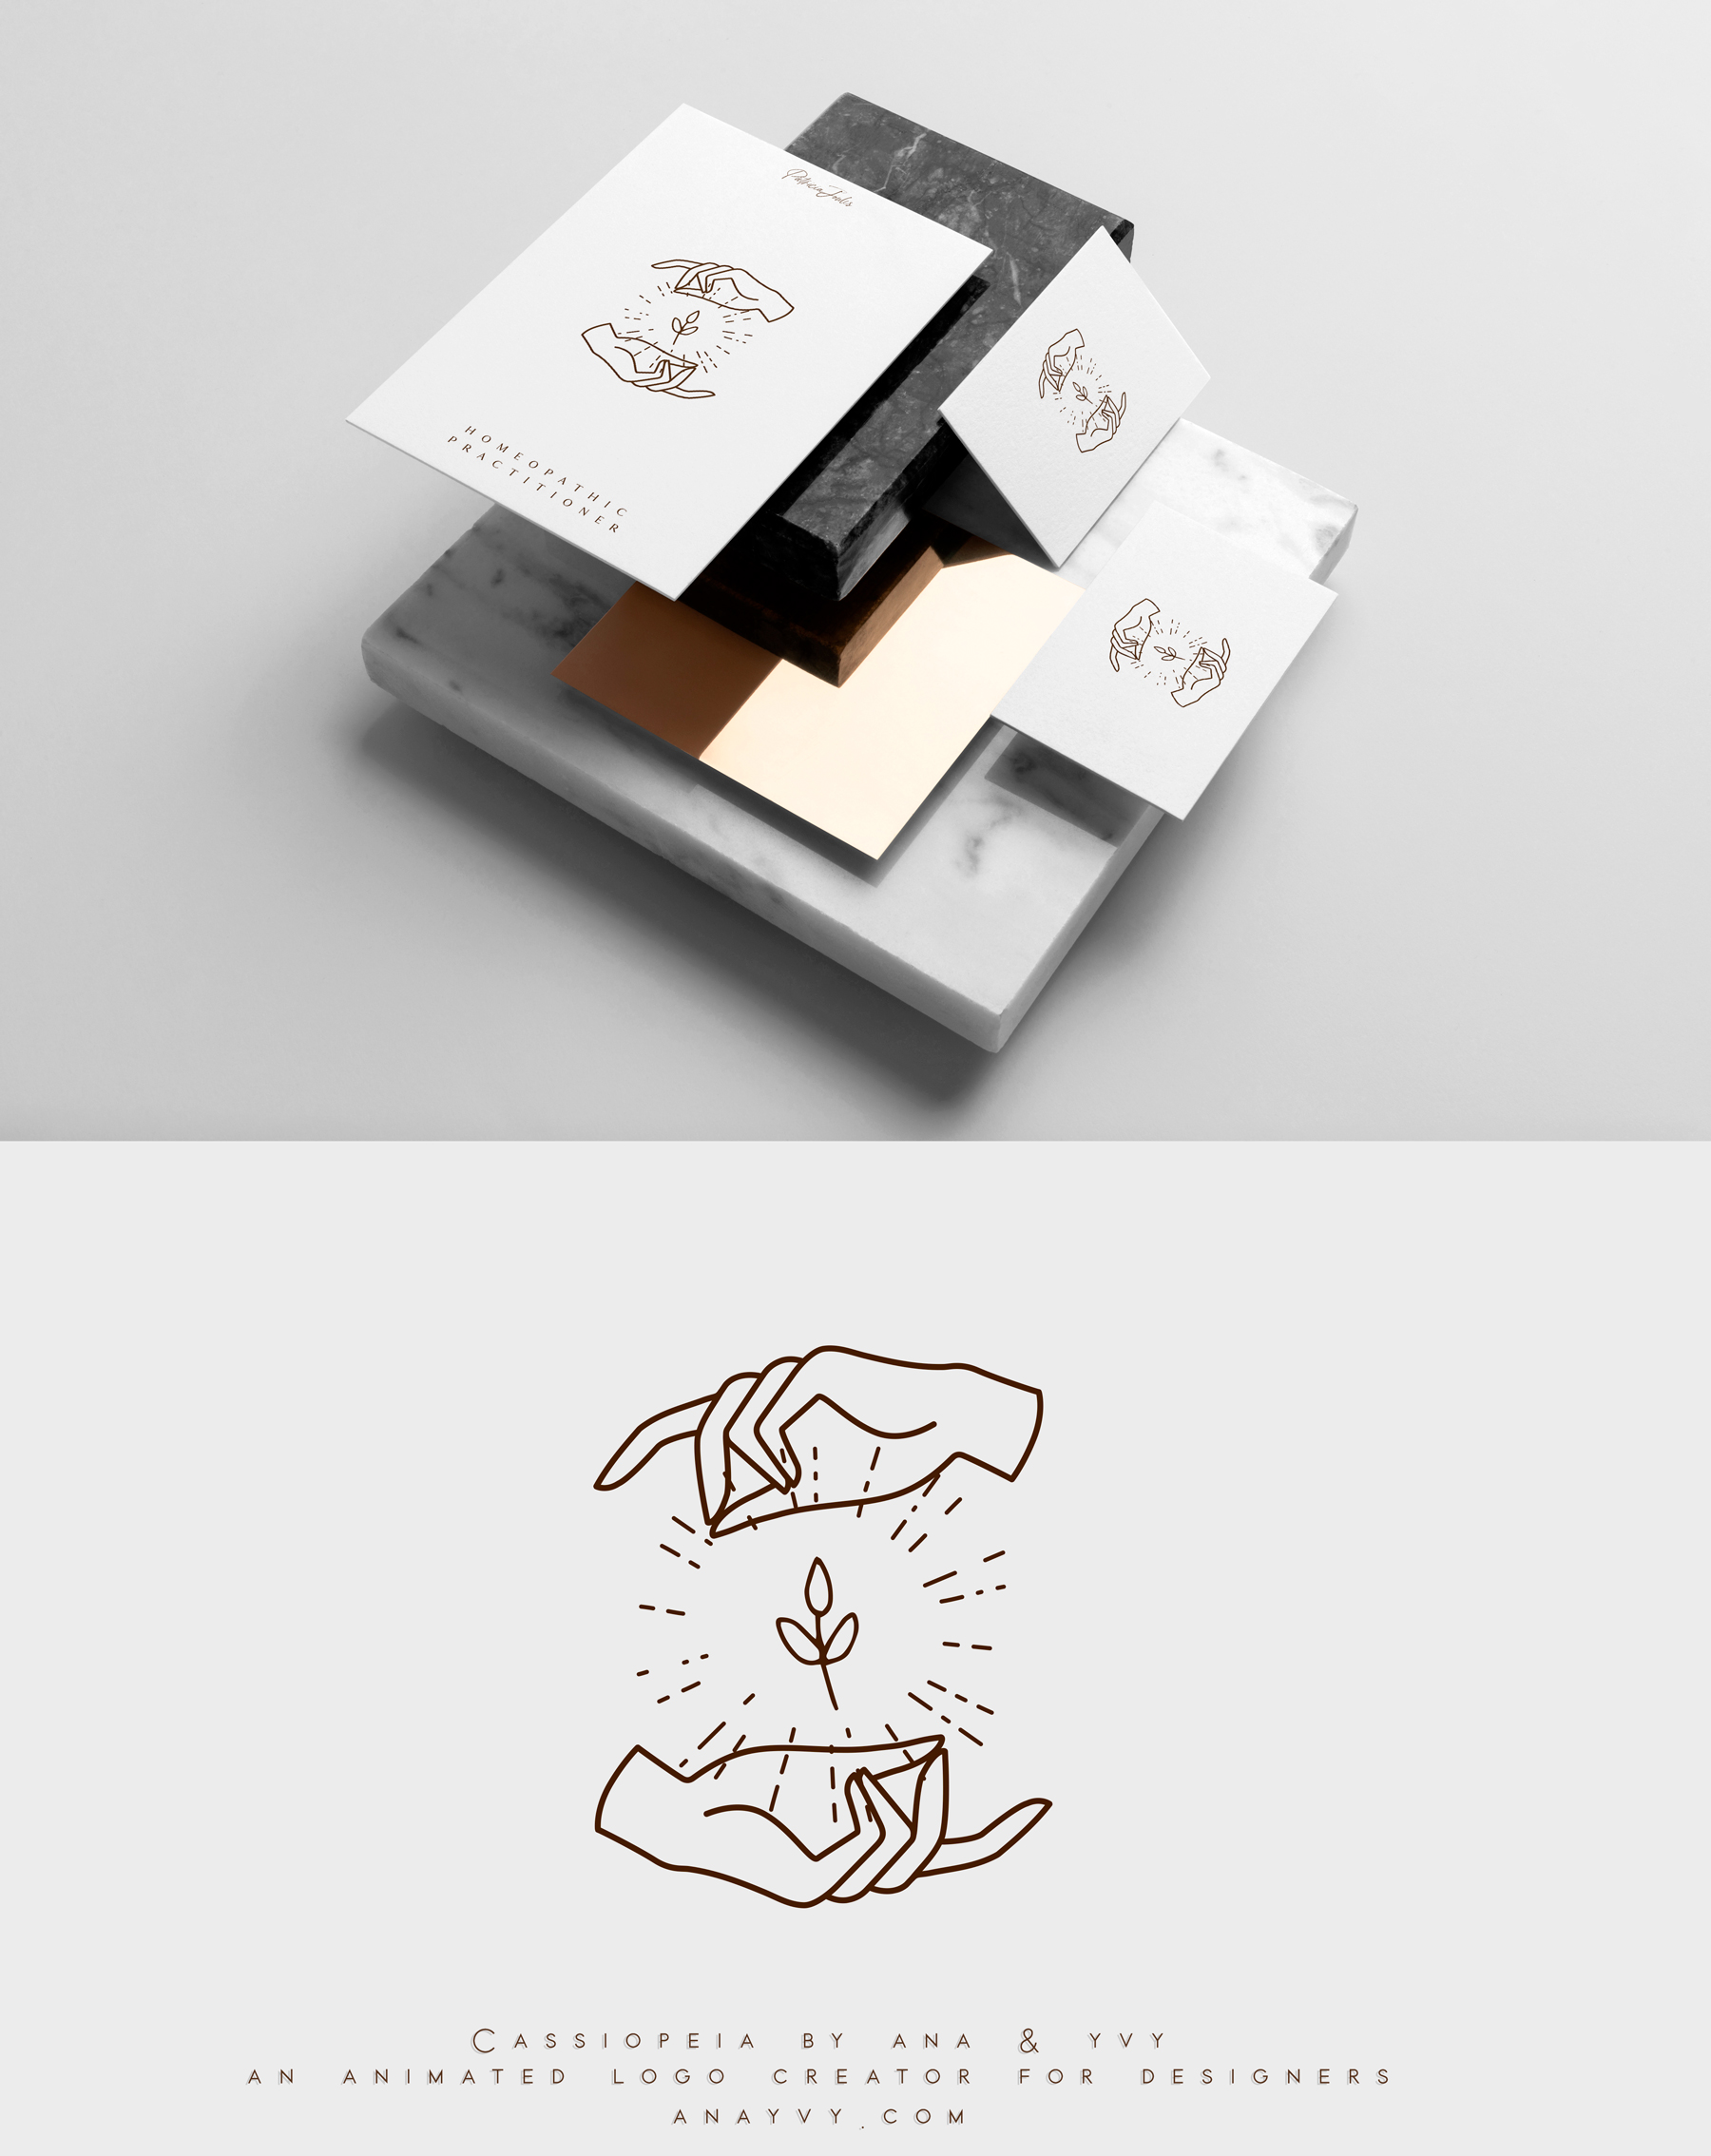 Cassiopeia-logo-design-animation-anayvy-motion-vintage-hand-greenery-apothecary-heal-healer-2